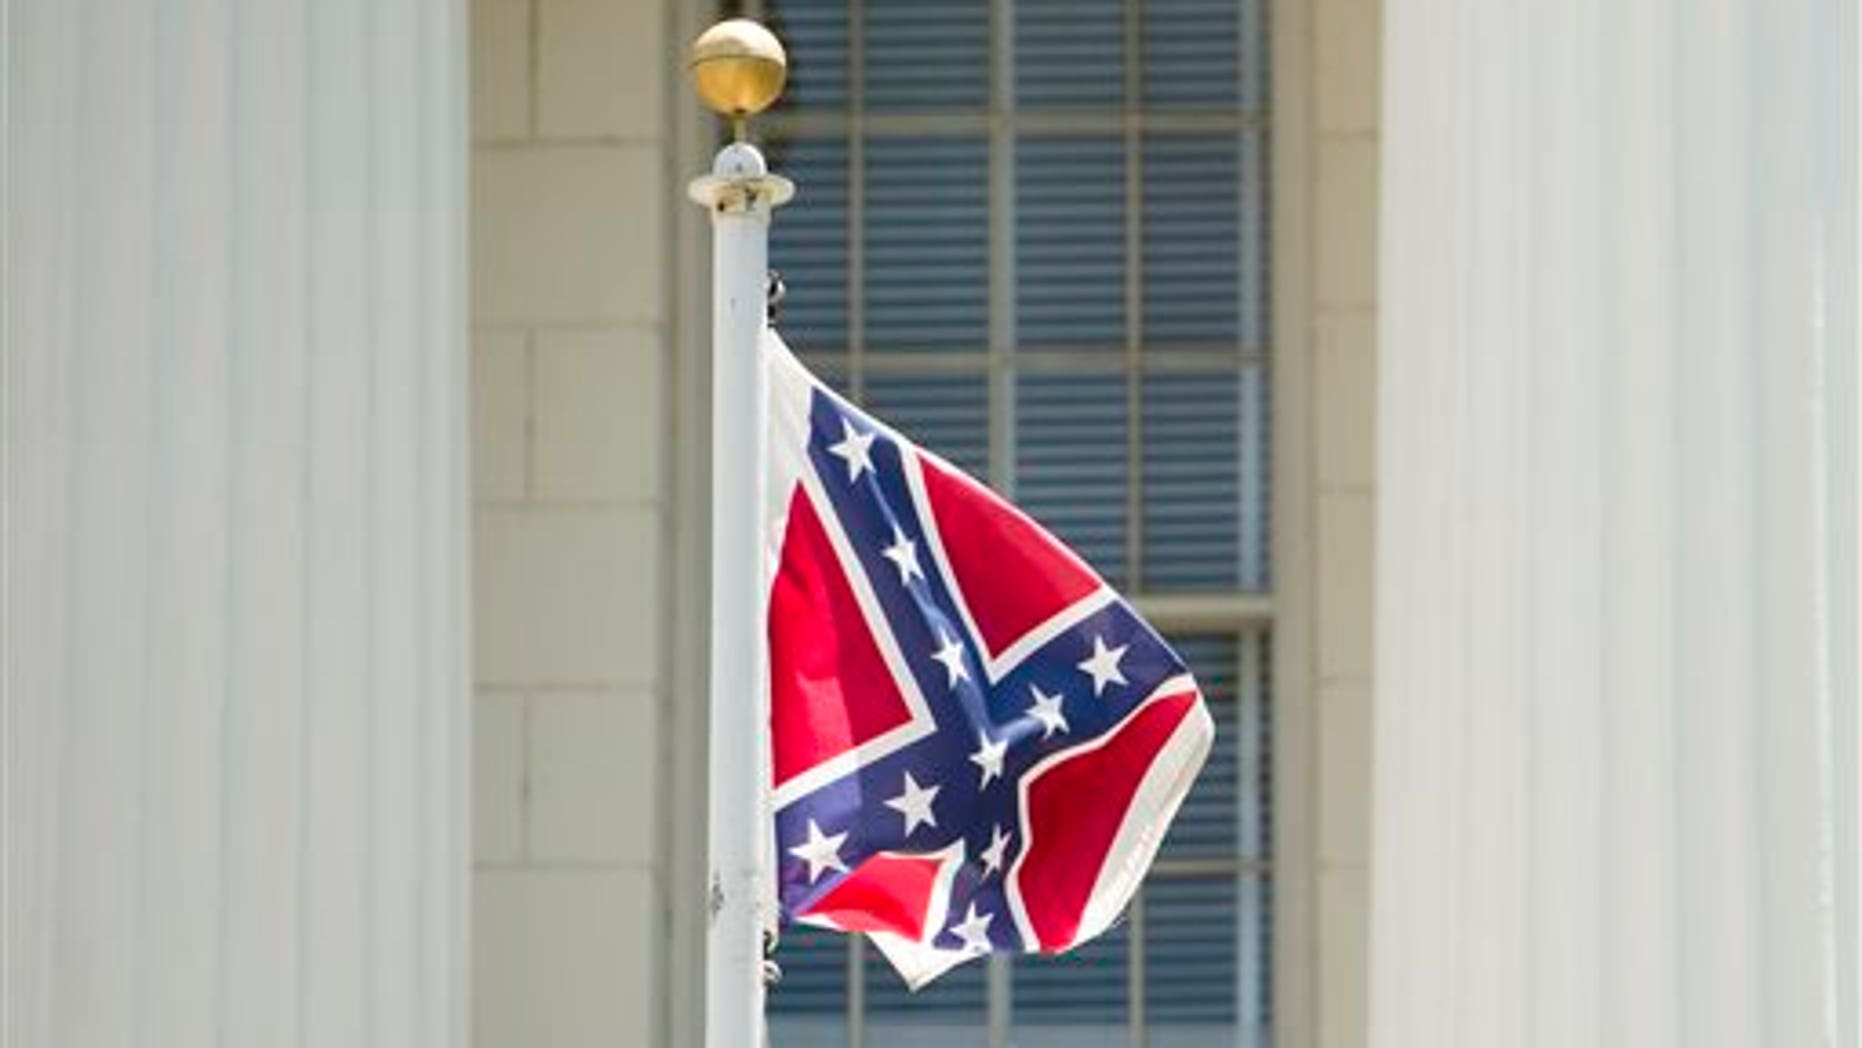 June 22: A Confederate flag flies on the grounds of the Alabama Capitol building in Montgomery, Ala.